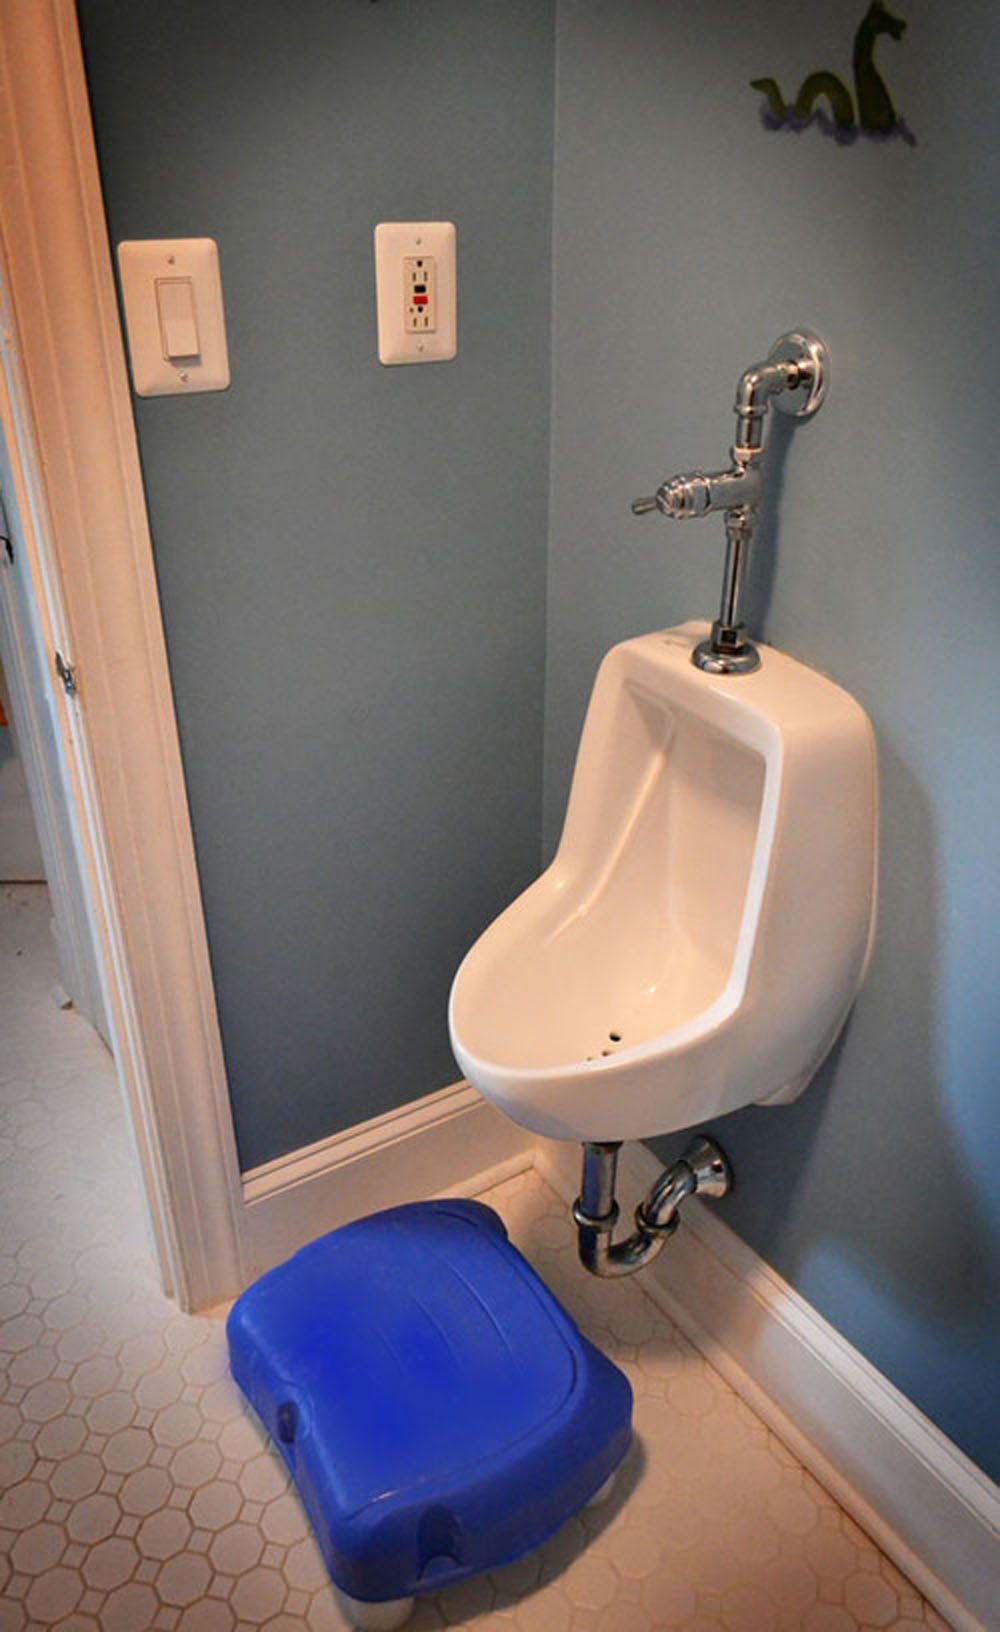 How To Put A Urinal In Your Home Bathroom And Make It Look Normal